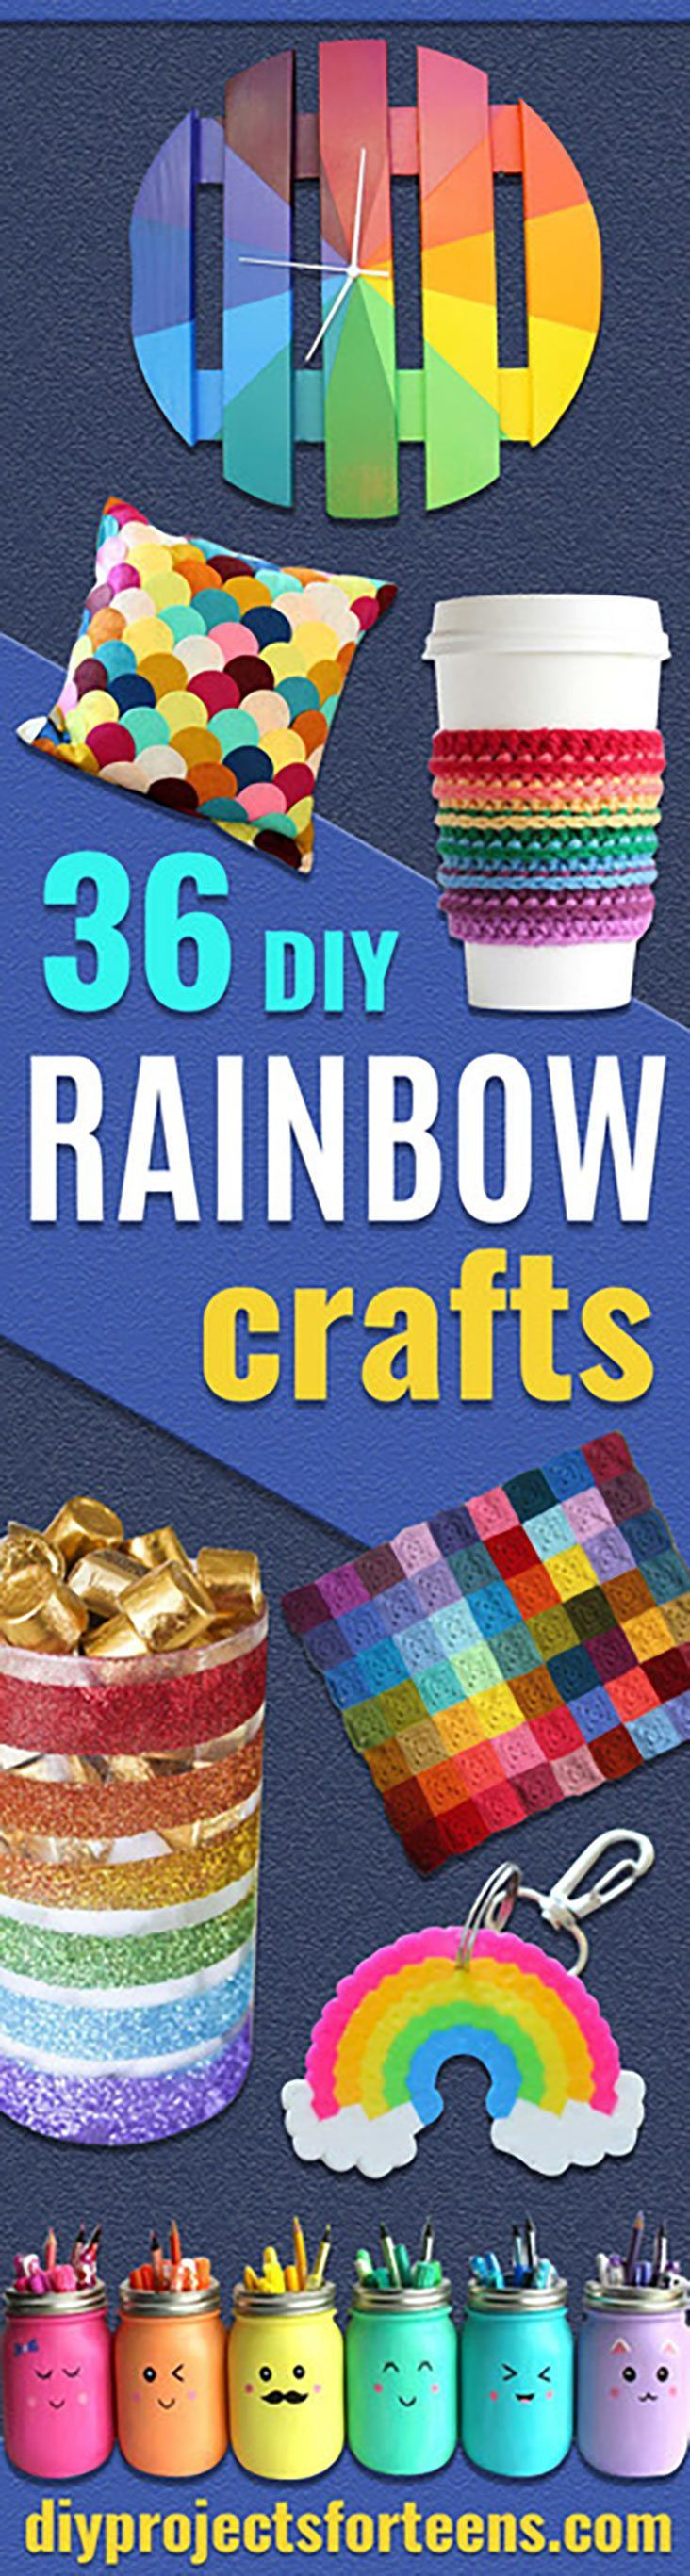 awesome craft ideas for adults 1141 best images about cool crafts ideas on 5916